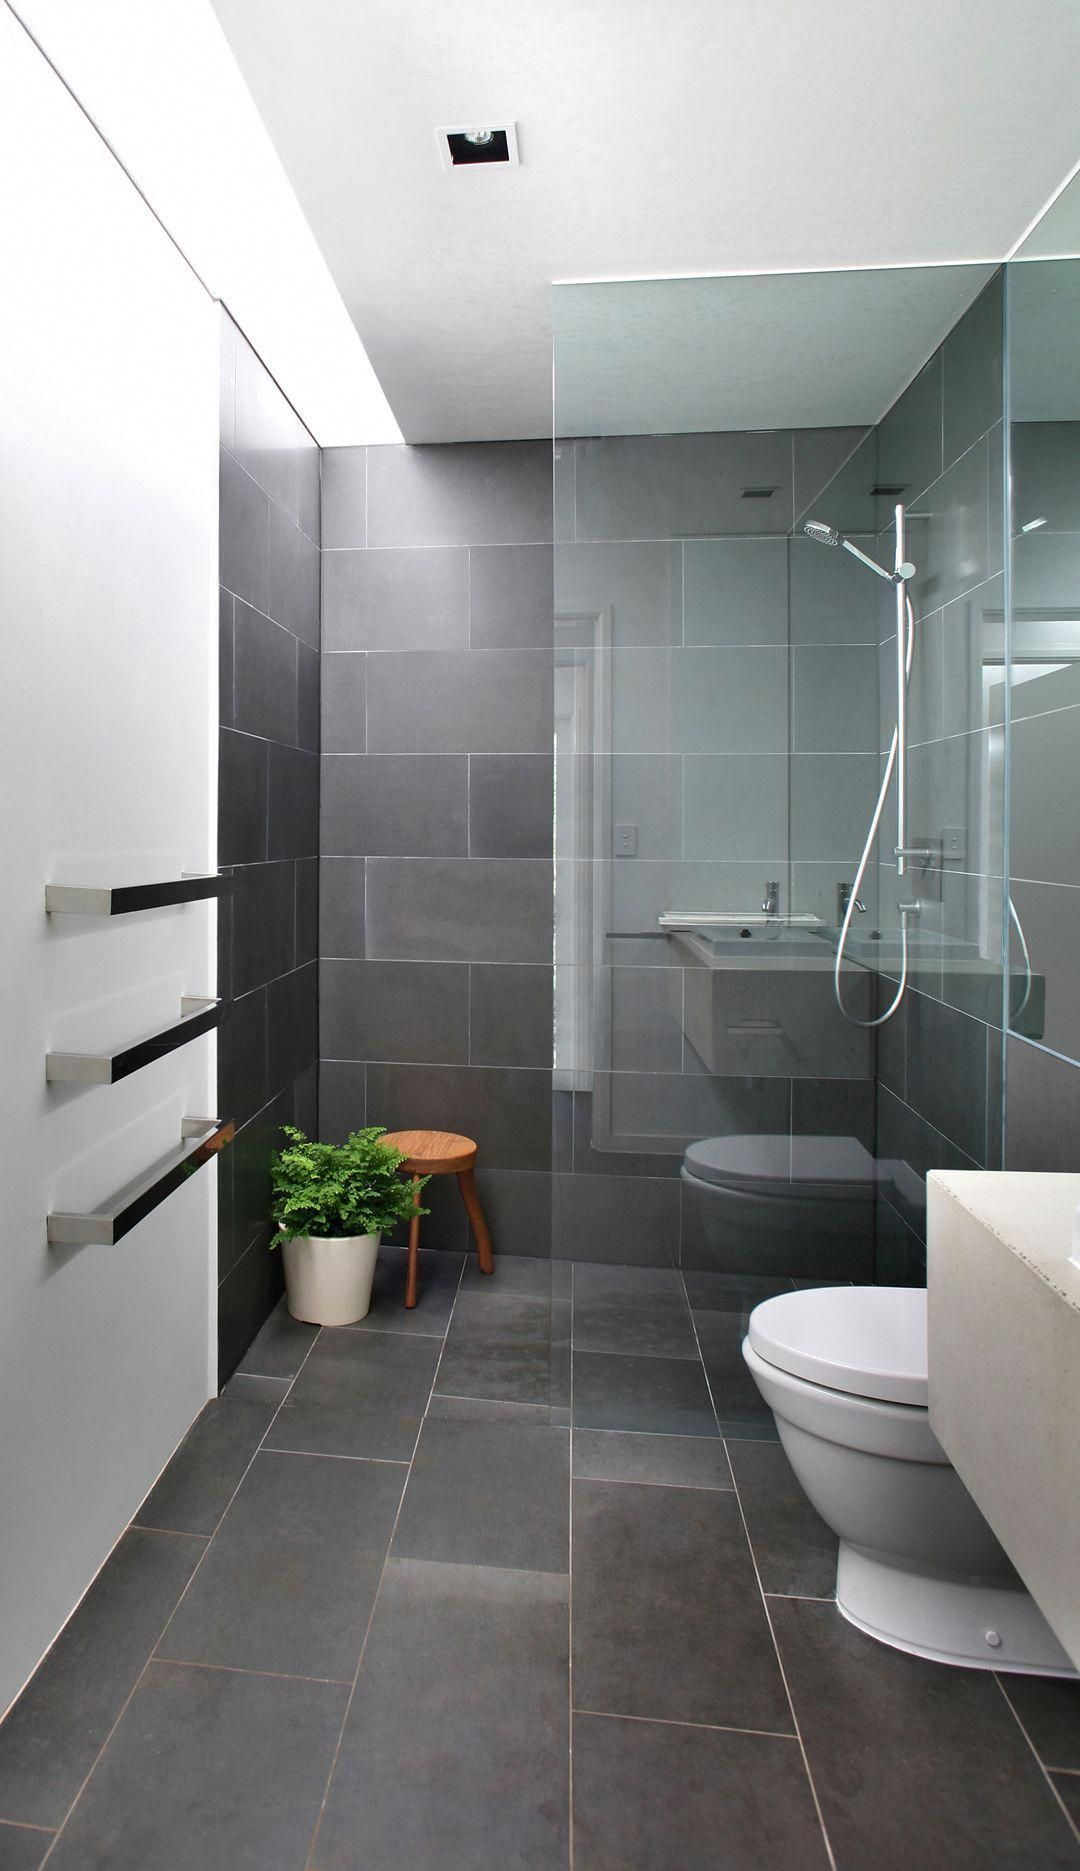 Gray Bathroom Ideas - Welcome to our main gray bathrooms picture gallery showcas... #Bathroom #bathrooms #gallery #Gray #Ideas #main #picture